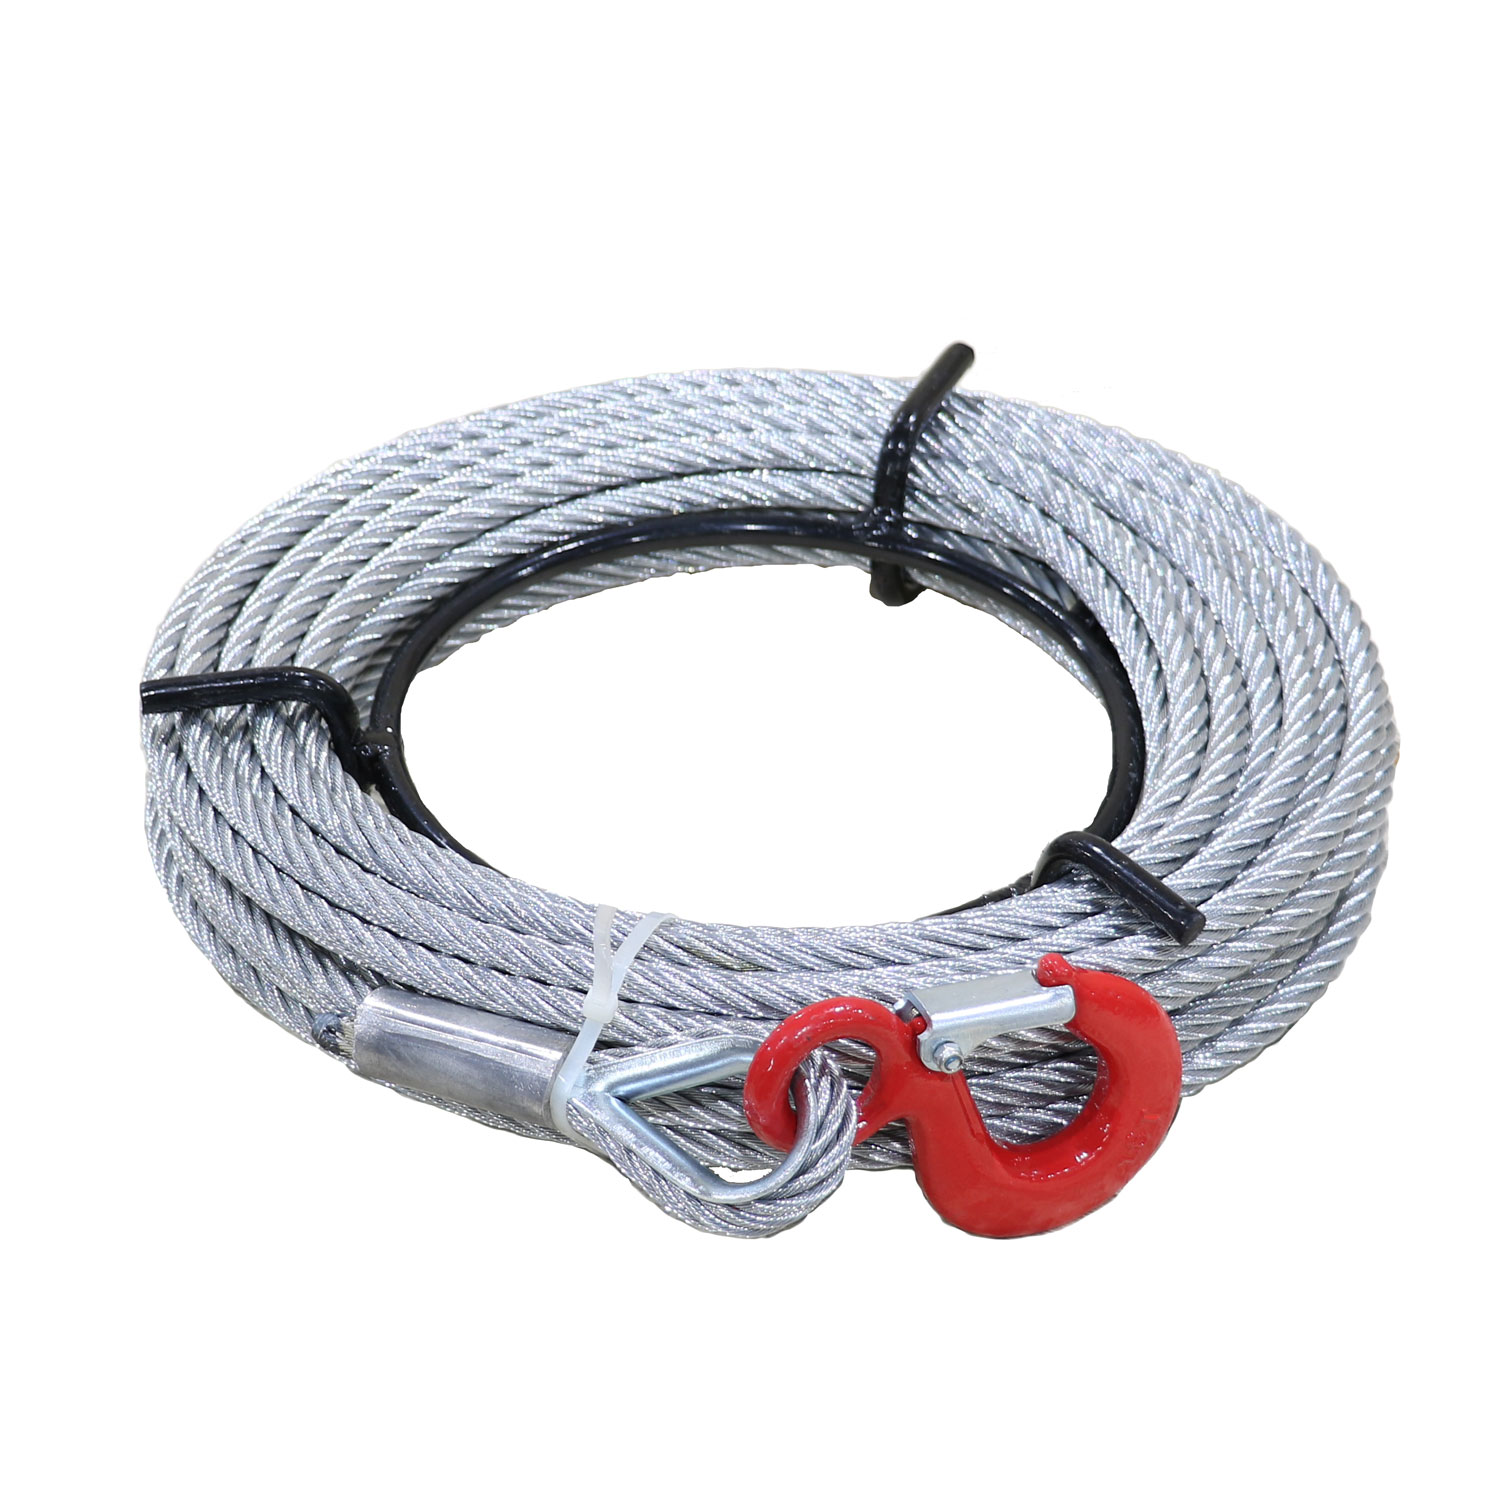 Replacement Cable for 3527 lbs Capacity, Tyler Tool Aluminum Wire ...